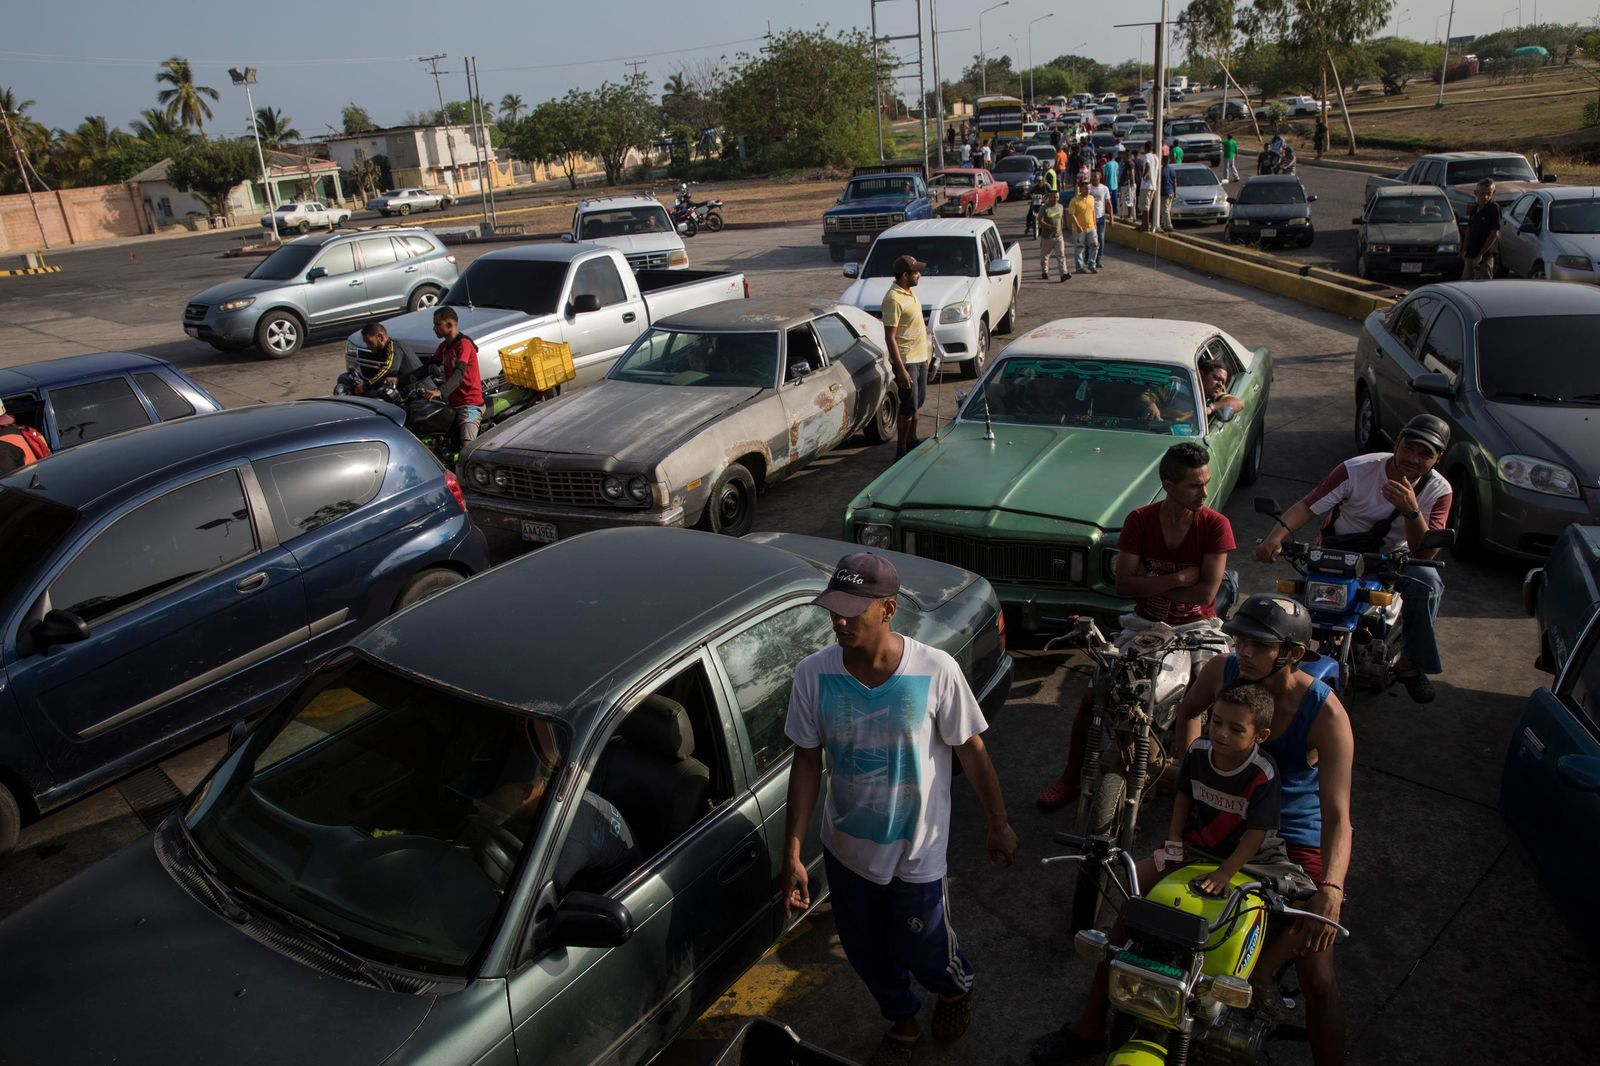 A line of cars spills on to the street as drivers wait to fill their tanks at a fuel station in Cabimas, Venezuela, Sunday, May 15, 2019.{ } (AP Photo/Rodrigo Abd)